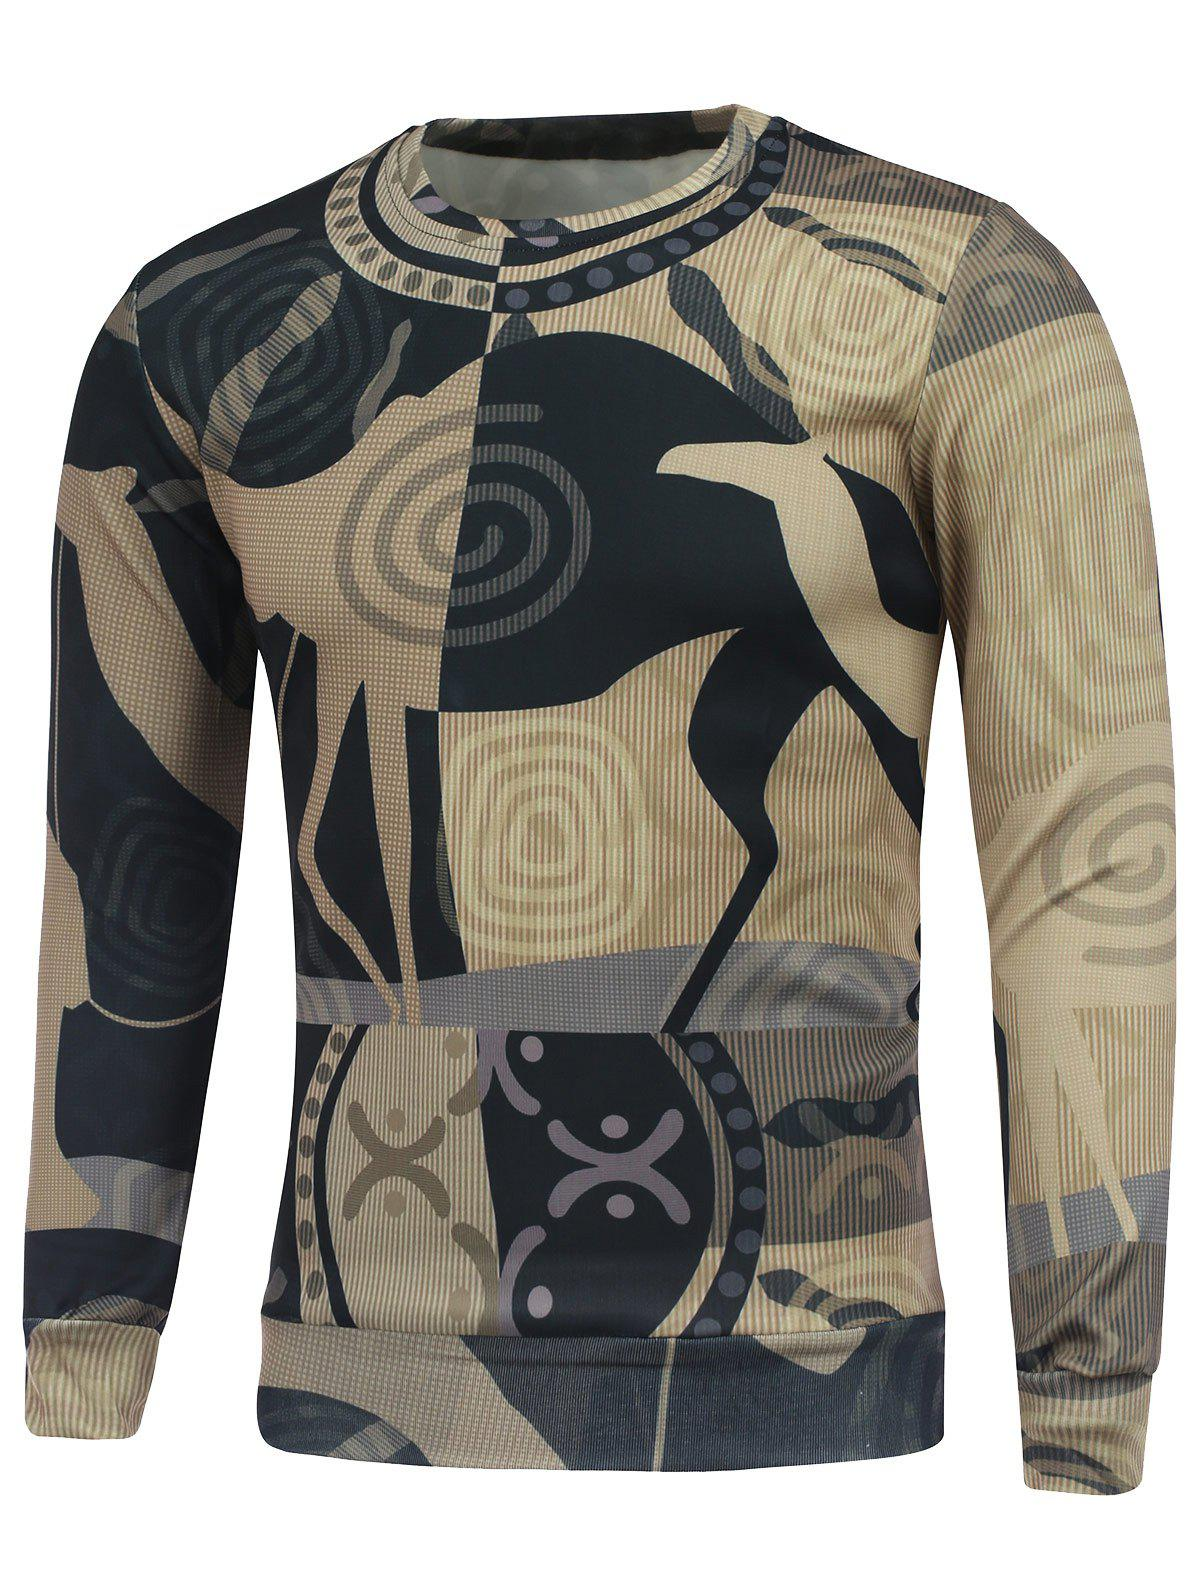 Abstract Graphic Printed Crew Neck Sweatshirt 2XL